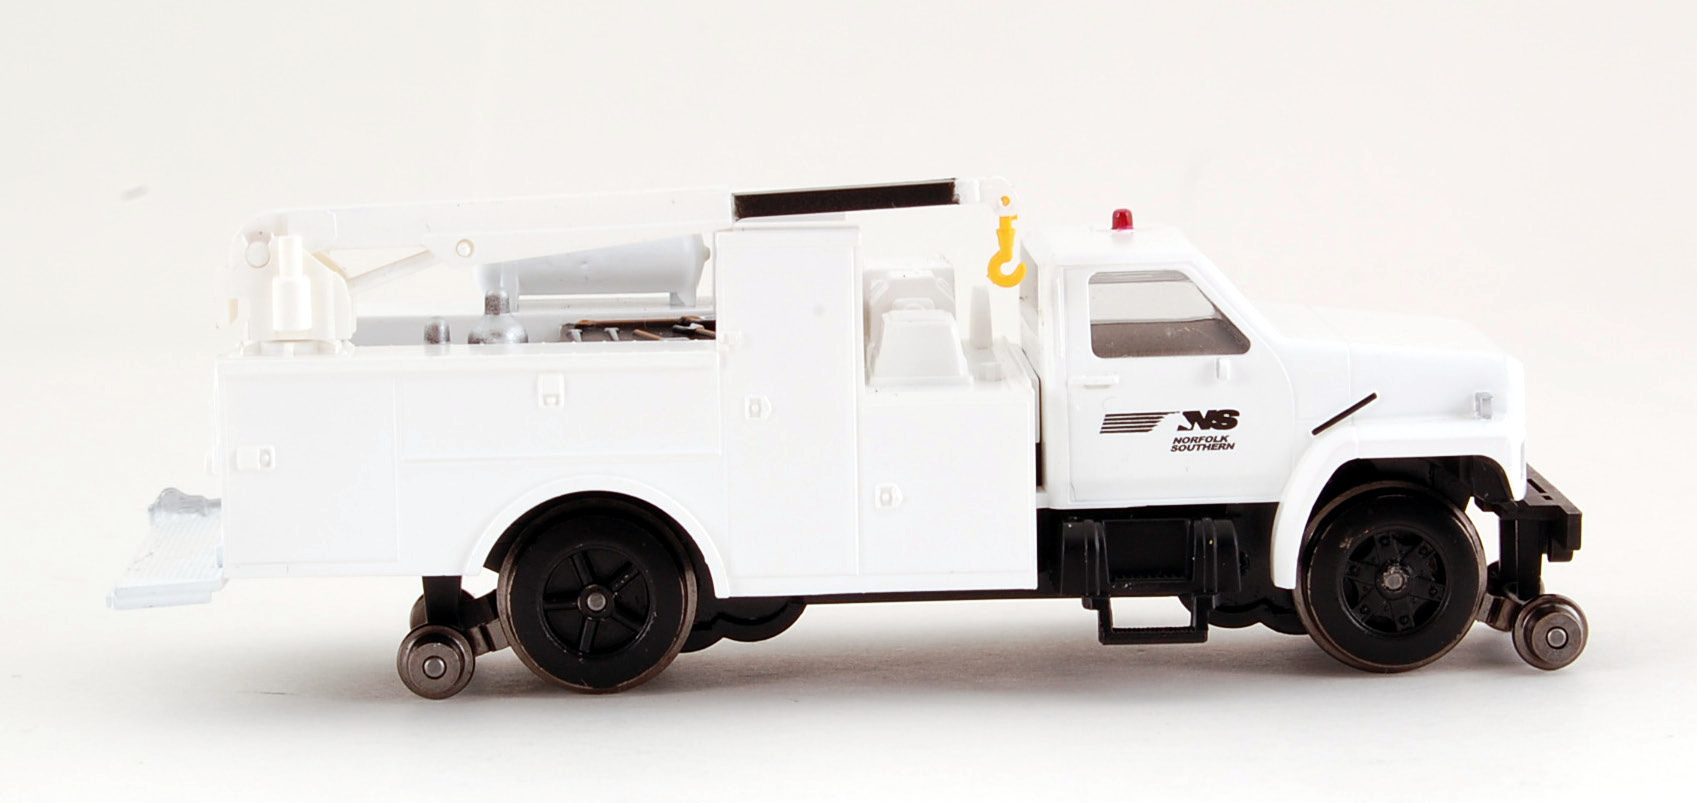 Details about bachmann ho scale train maintenance truck dcc equipped n